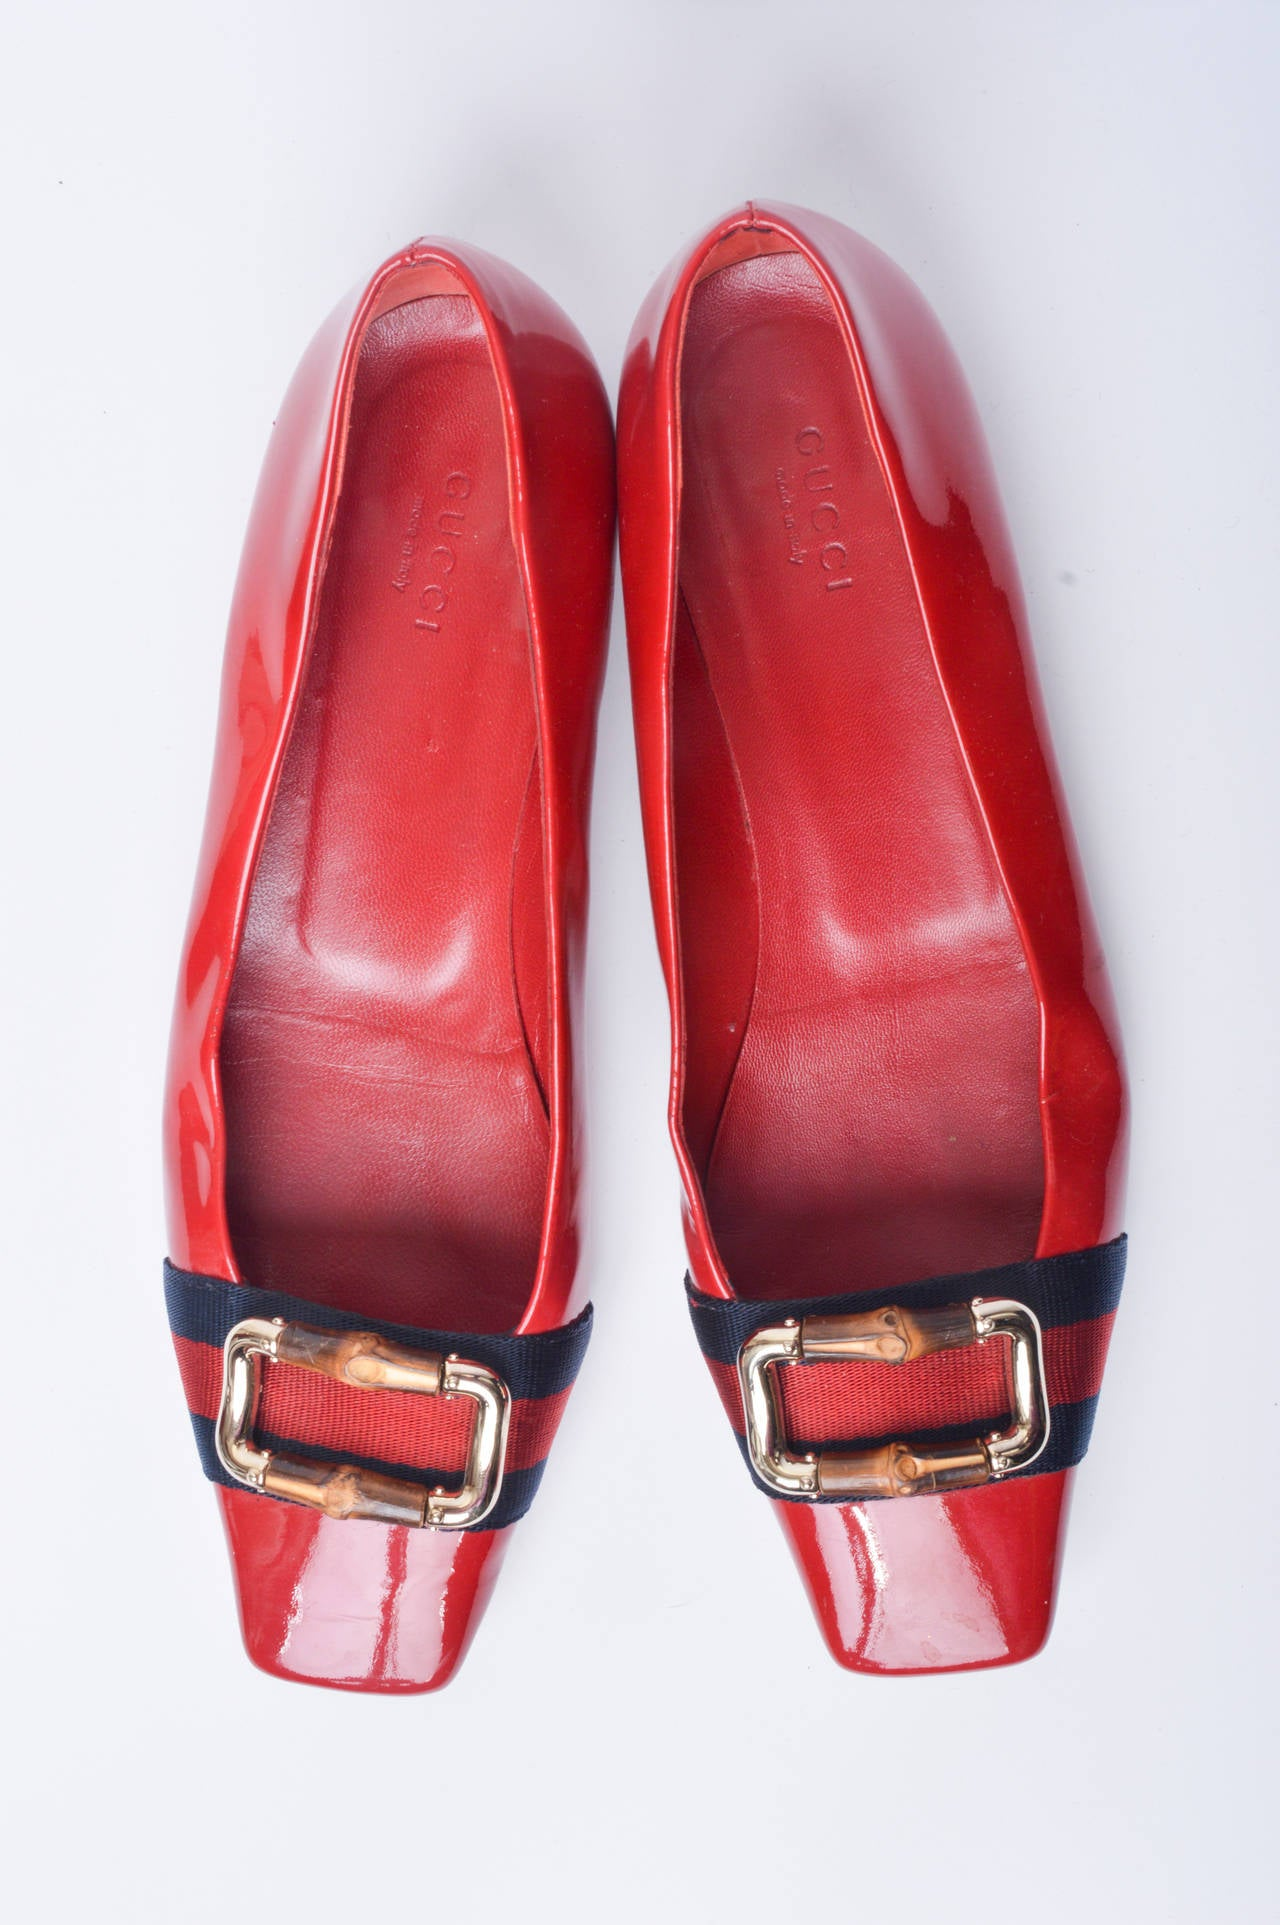 Gucci Red Patent Leather Mod Flats Size 8 3